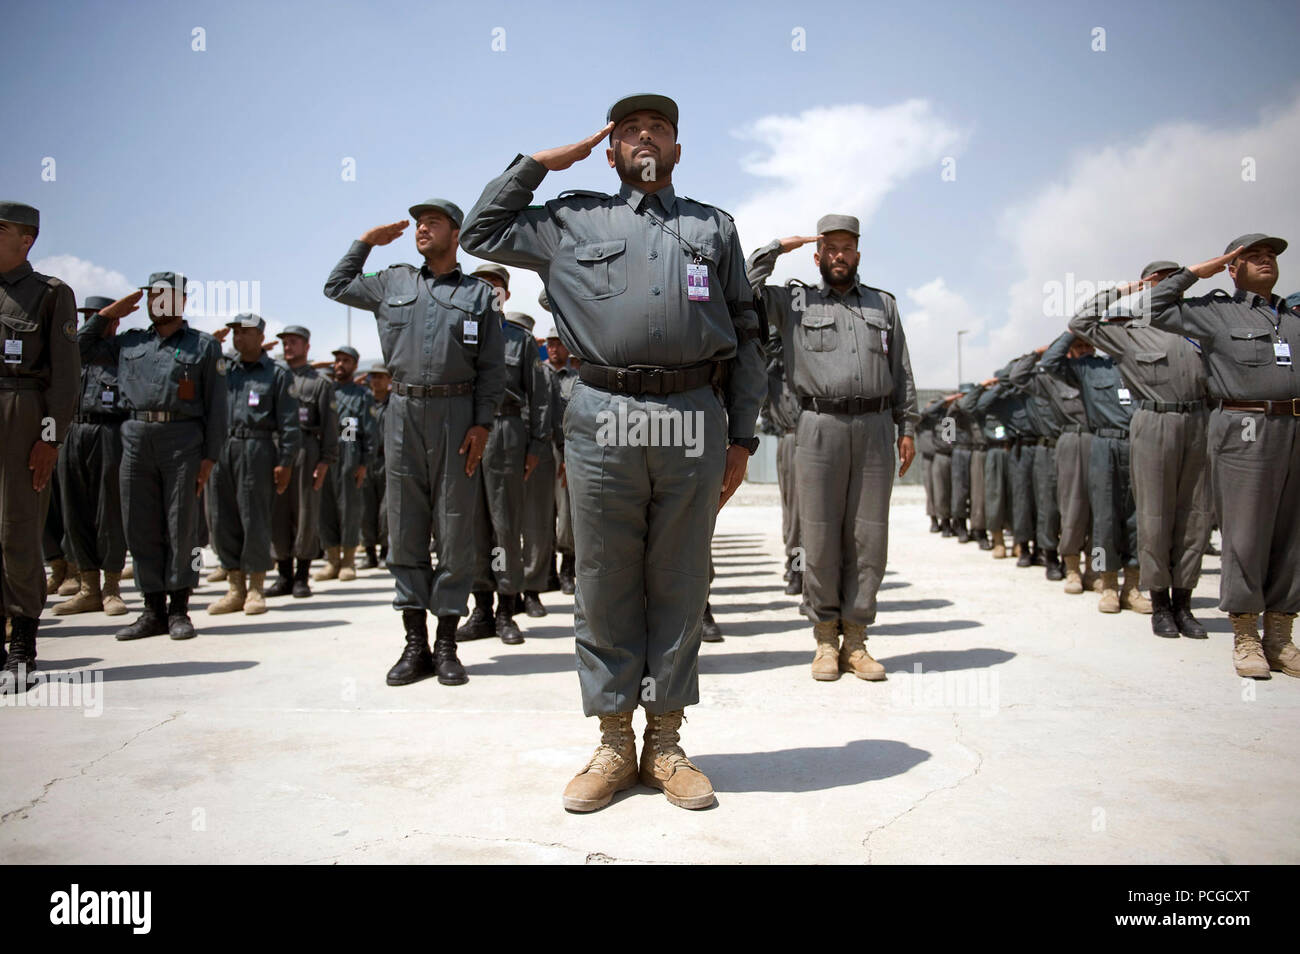 National Police recruits participate in entry level training at the Central Training Center, Kabul, Afghanistan, April 23, 2009. Trainees attend an eight-week program of instruction. ( - Stock Image